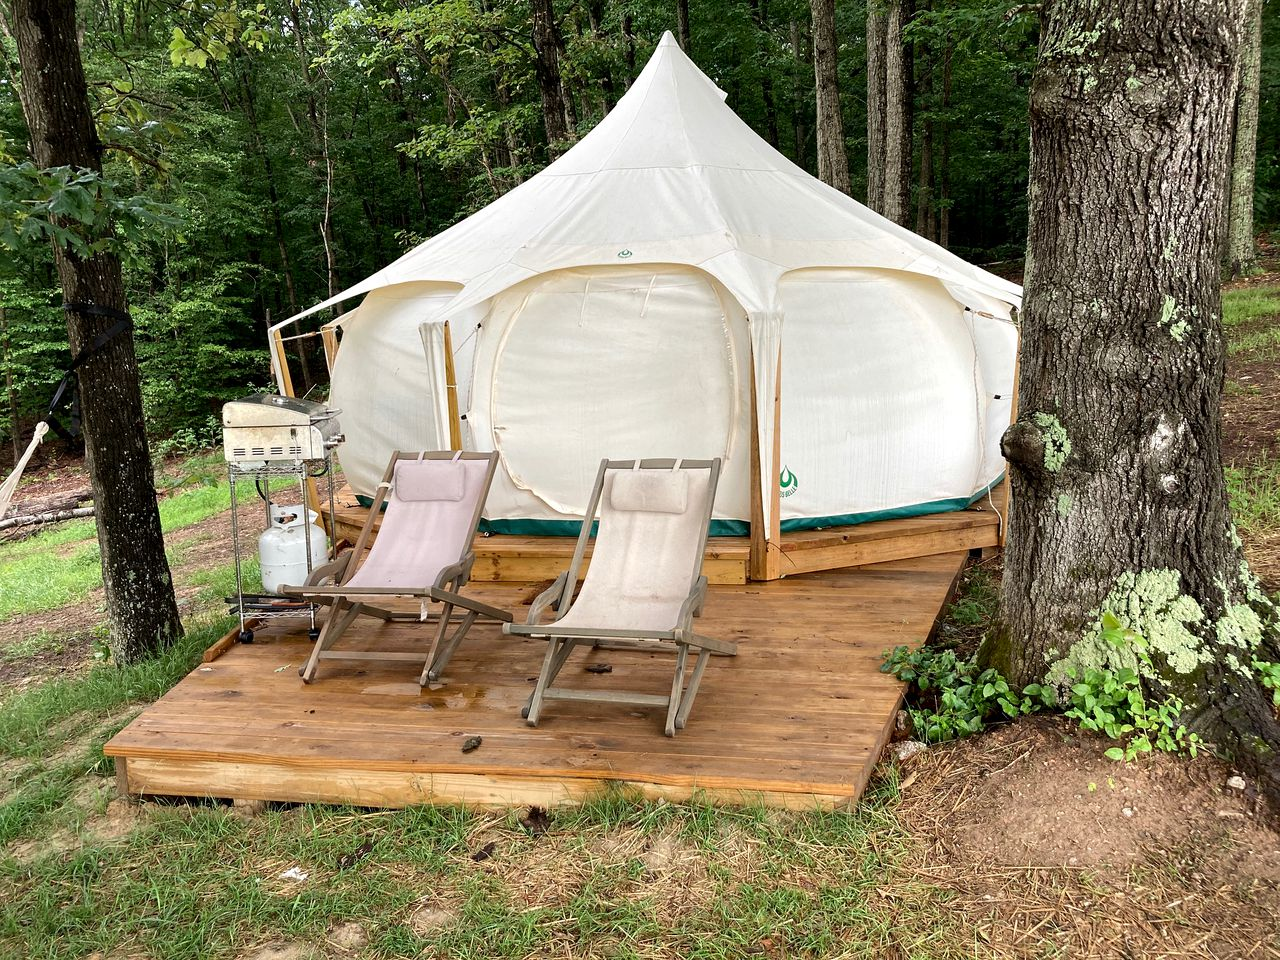 This gorgeous Virginia glamping retreat is the ideal nature getaway.